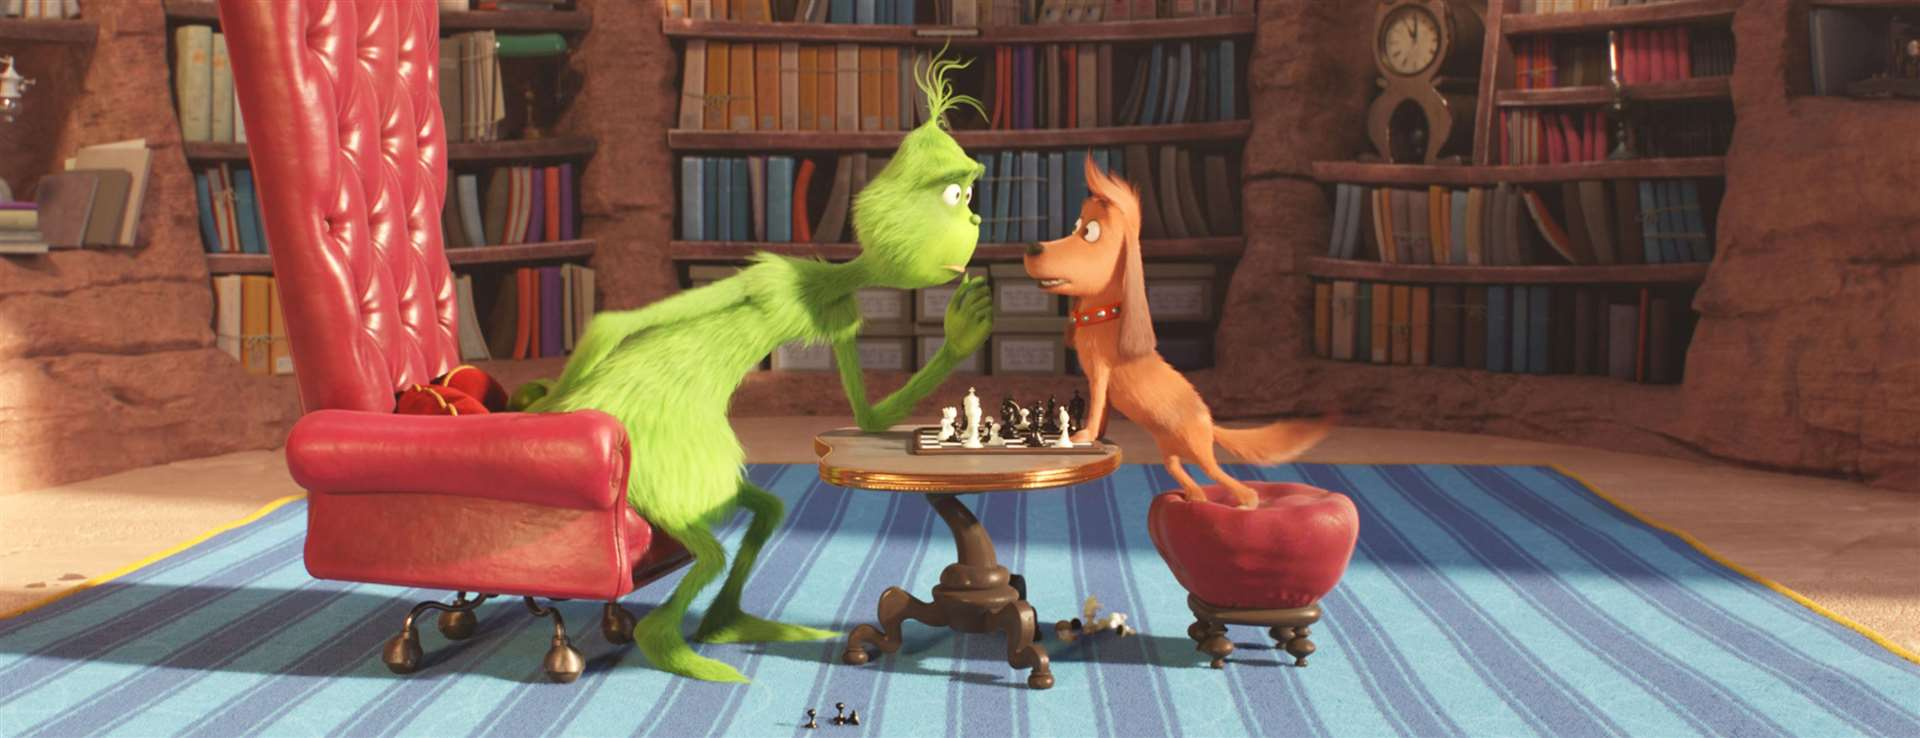 The Grinch (voiced by Benedict Cumberbatch) and trusty pooch Max play chess. Picture: PA Photo/Universal Pictures/Illumination/Dr Seuss Enterprises.